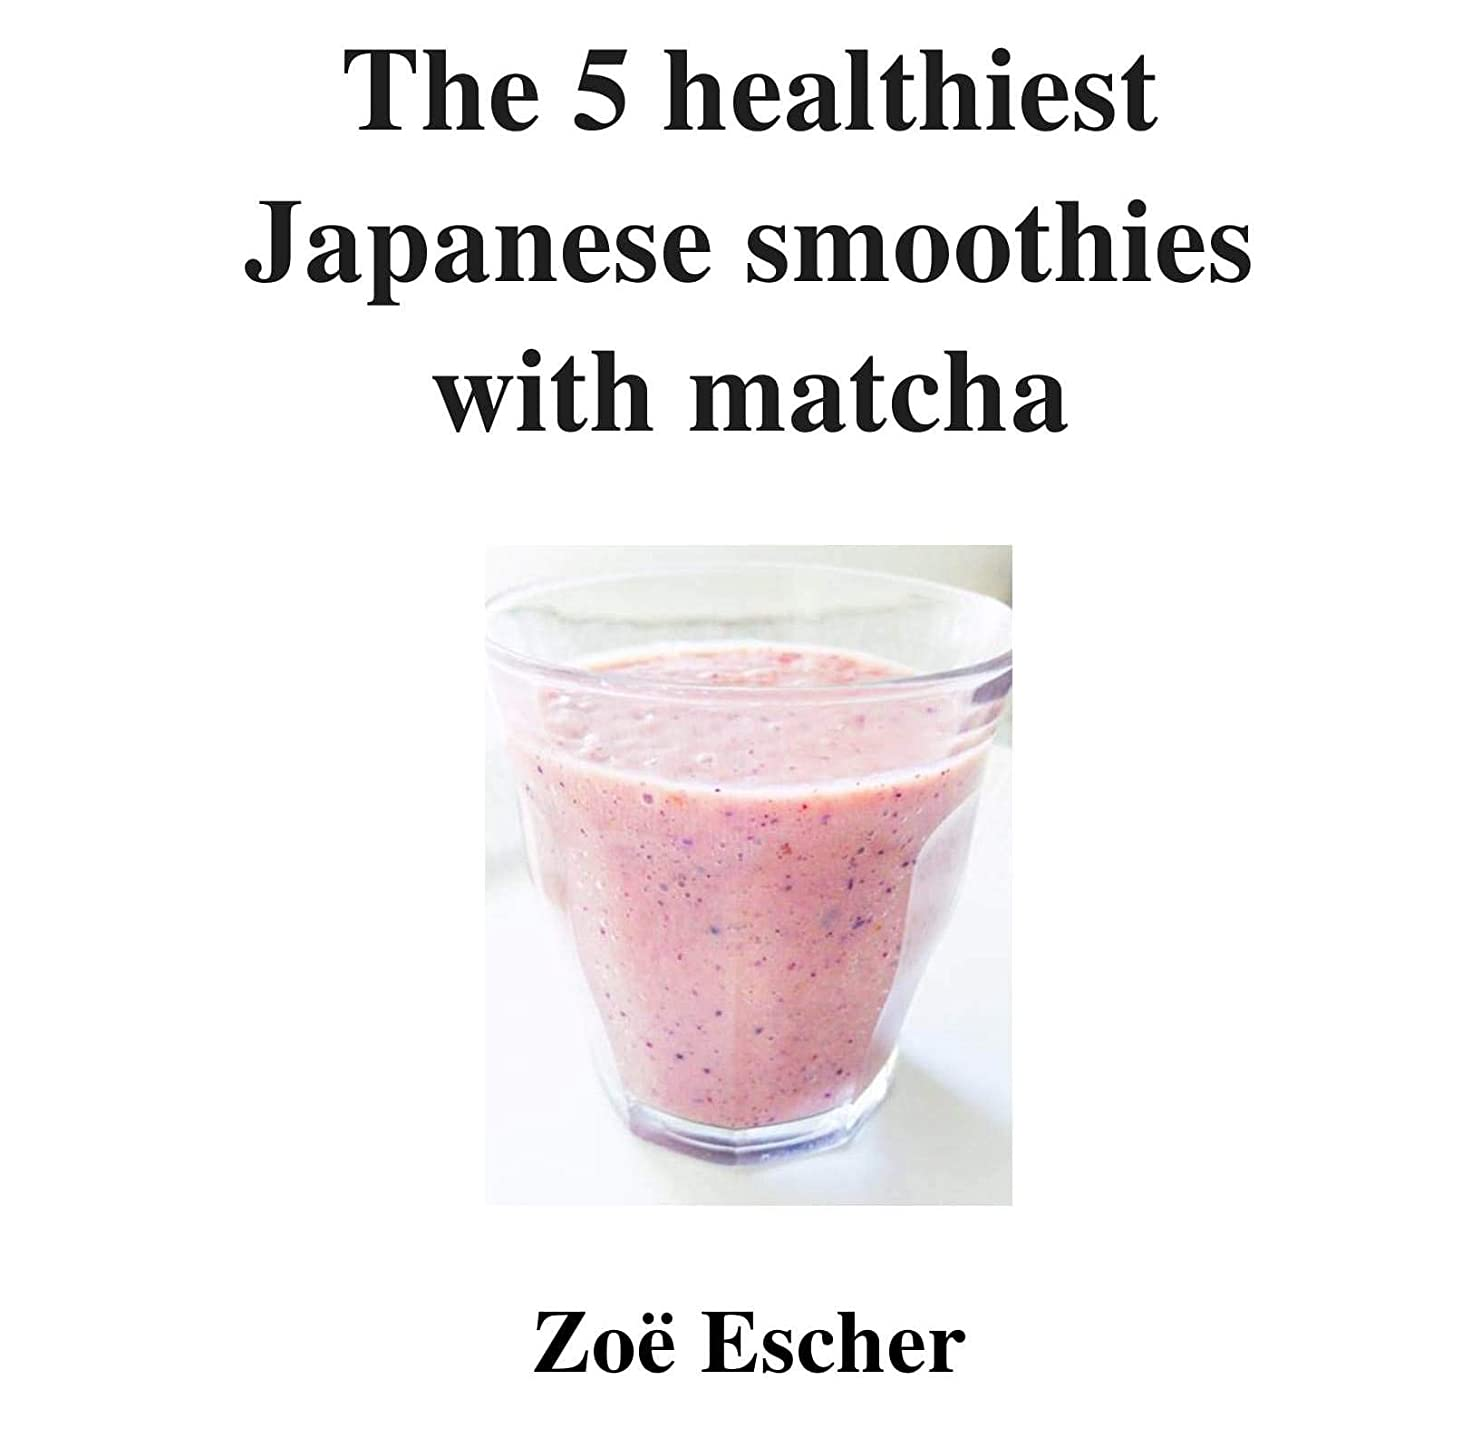 ボート祖先ブランドThe 5 healthiest Japanese smoothies with matcha (English Edition)